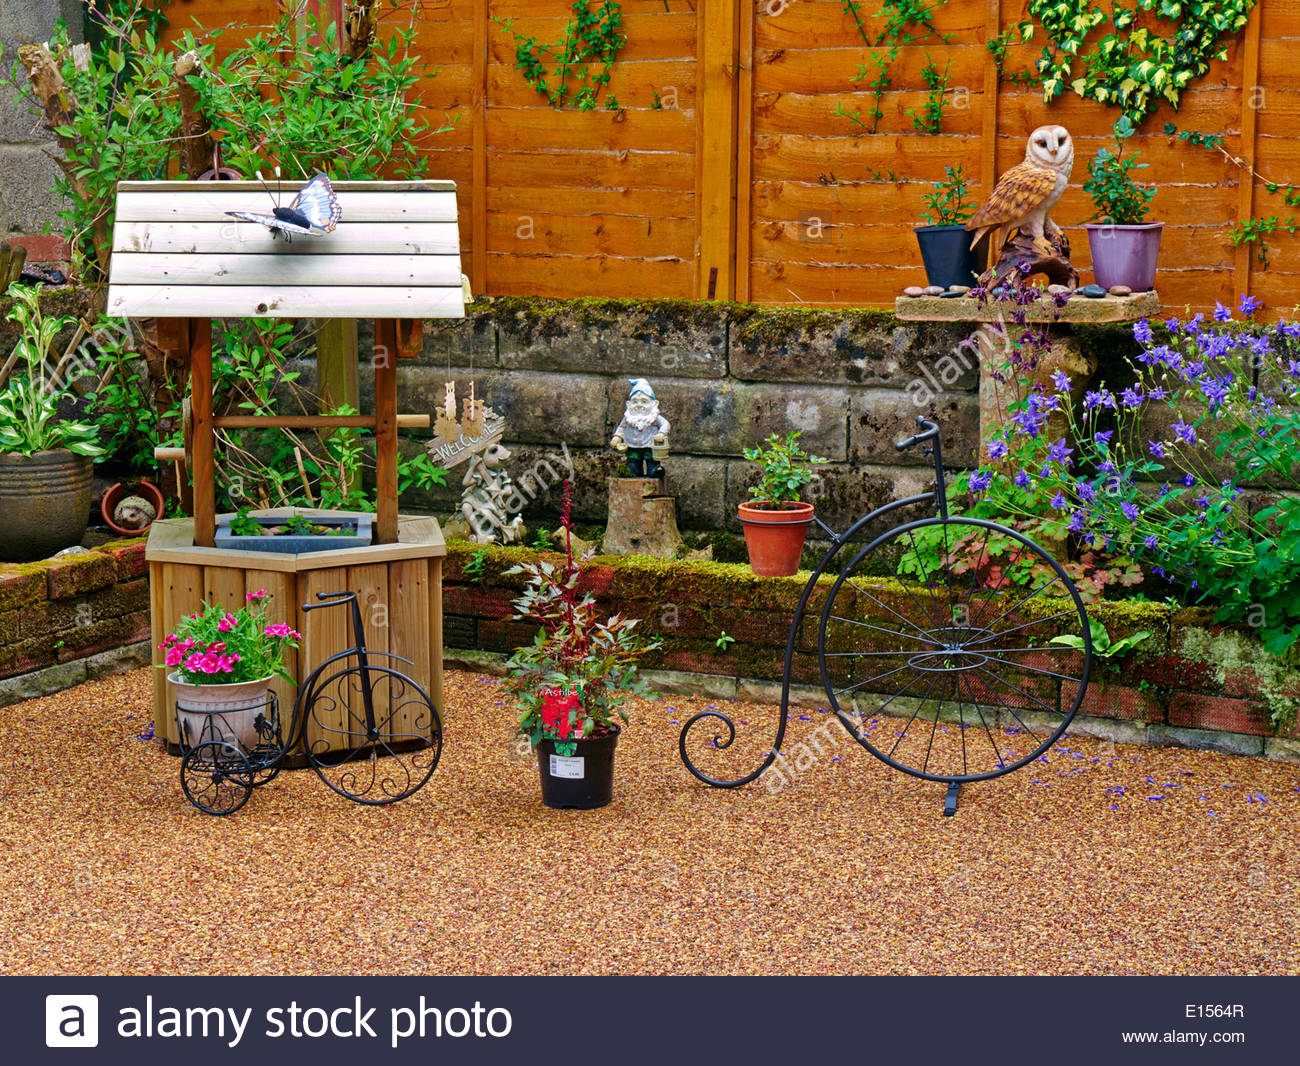 Decorative garden ornaments - A Patio Backyard Filled With Decorative Garden Ornaments And Potted Plants Stock Image